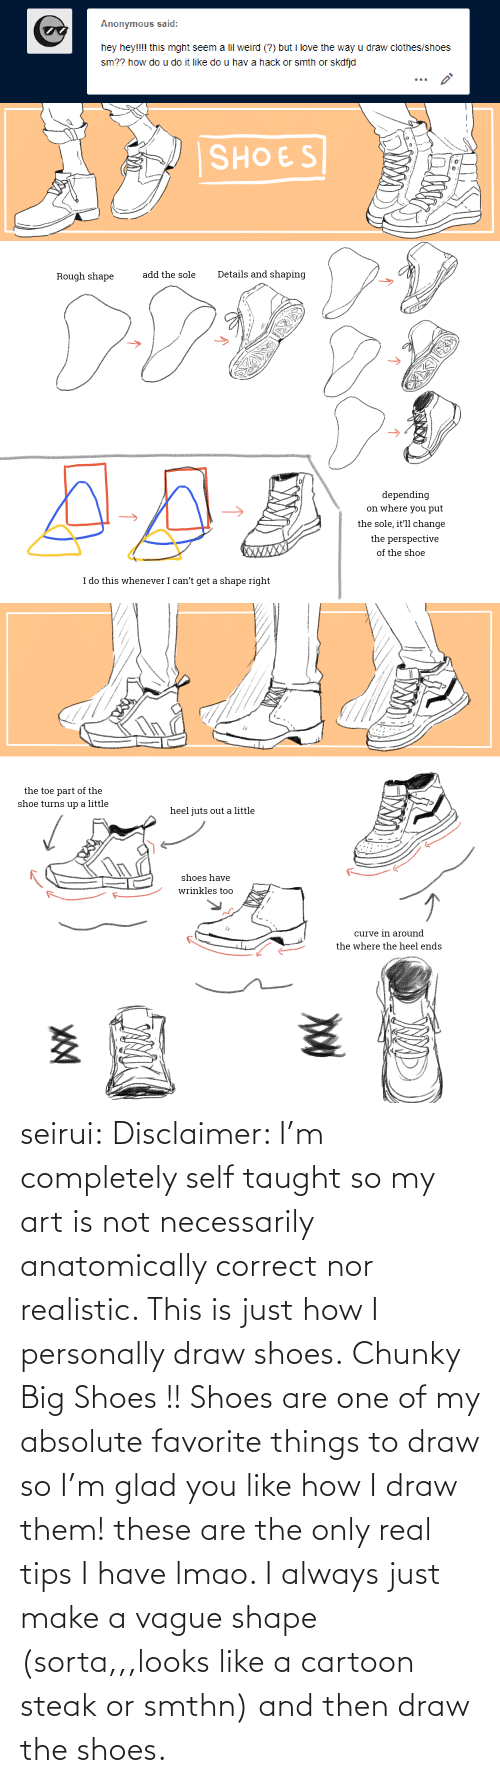 whenever: Anonymous said:  hey hey!!!! this mght seem a lil weird (?) but i love the way u draw clothes/shoes  sm?? how do u do it like do u hav a hack or smth or skdfjd   SHOES  Details and shaping  add the sole  Rough shape  depending  on where you put  the sole, it'll change  the perspective  XWXXX  of the shoe  I do this whenever I can't get a shape right   the toe part of the  shoe turns up a little  heel juts out a little  shoes have  wrinkles too  curve in around  the where the heel ends seirui: Disclaimer: I'm completely self taught so my art is not necessarily anatomically correct nor realistic. This is just how I personally draw shoes. Chunky Big Shoes !! Shoes are one of my absolute favorite things to draw so I'm glad you like how I draw them! these are the only real tips I have lmao. I always just make a vague shape (sorta,,,looks like a cartoon steak or smthn) and then draw the shoes.